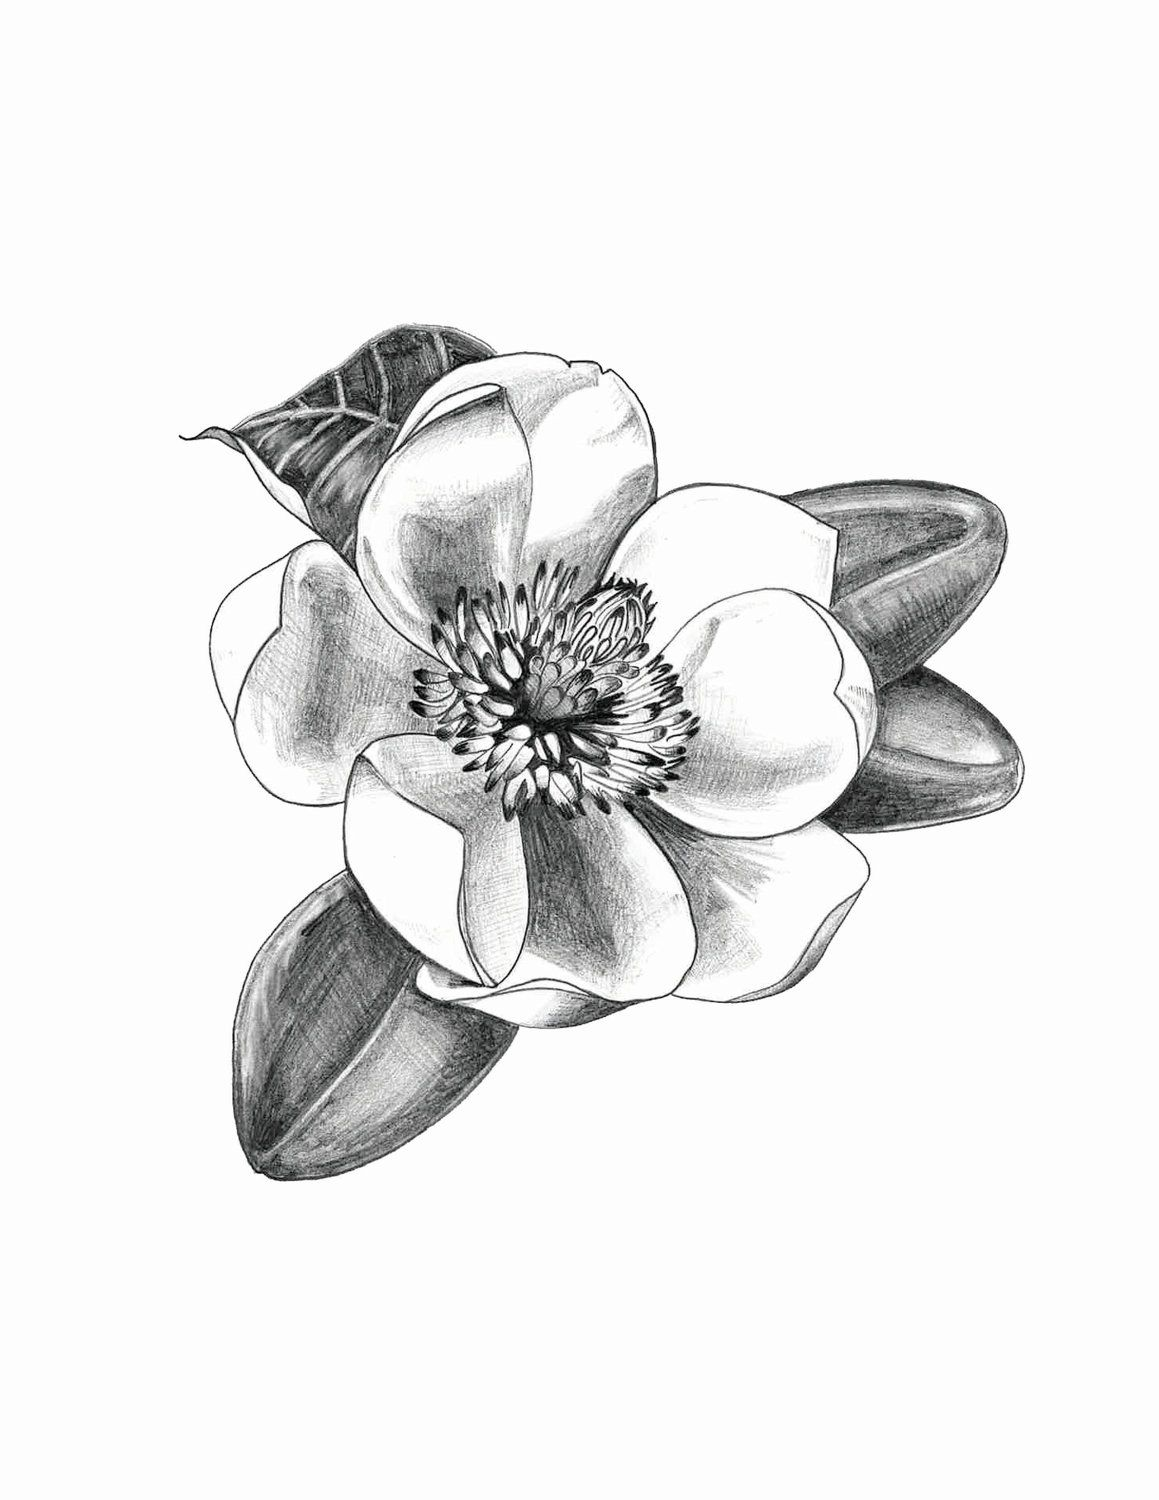 Pin By Kristen Kullberg On Botany Zoology And Such Magnolia